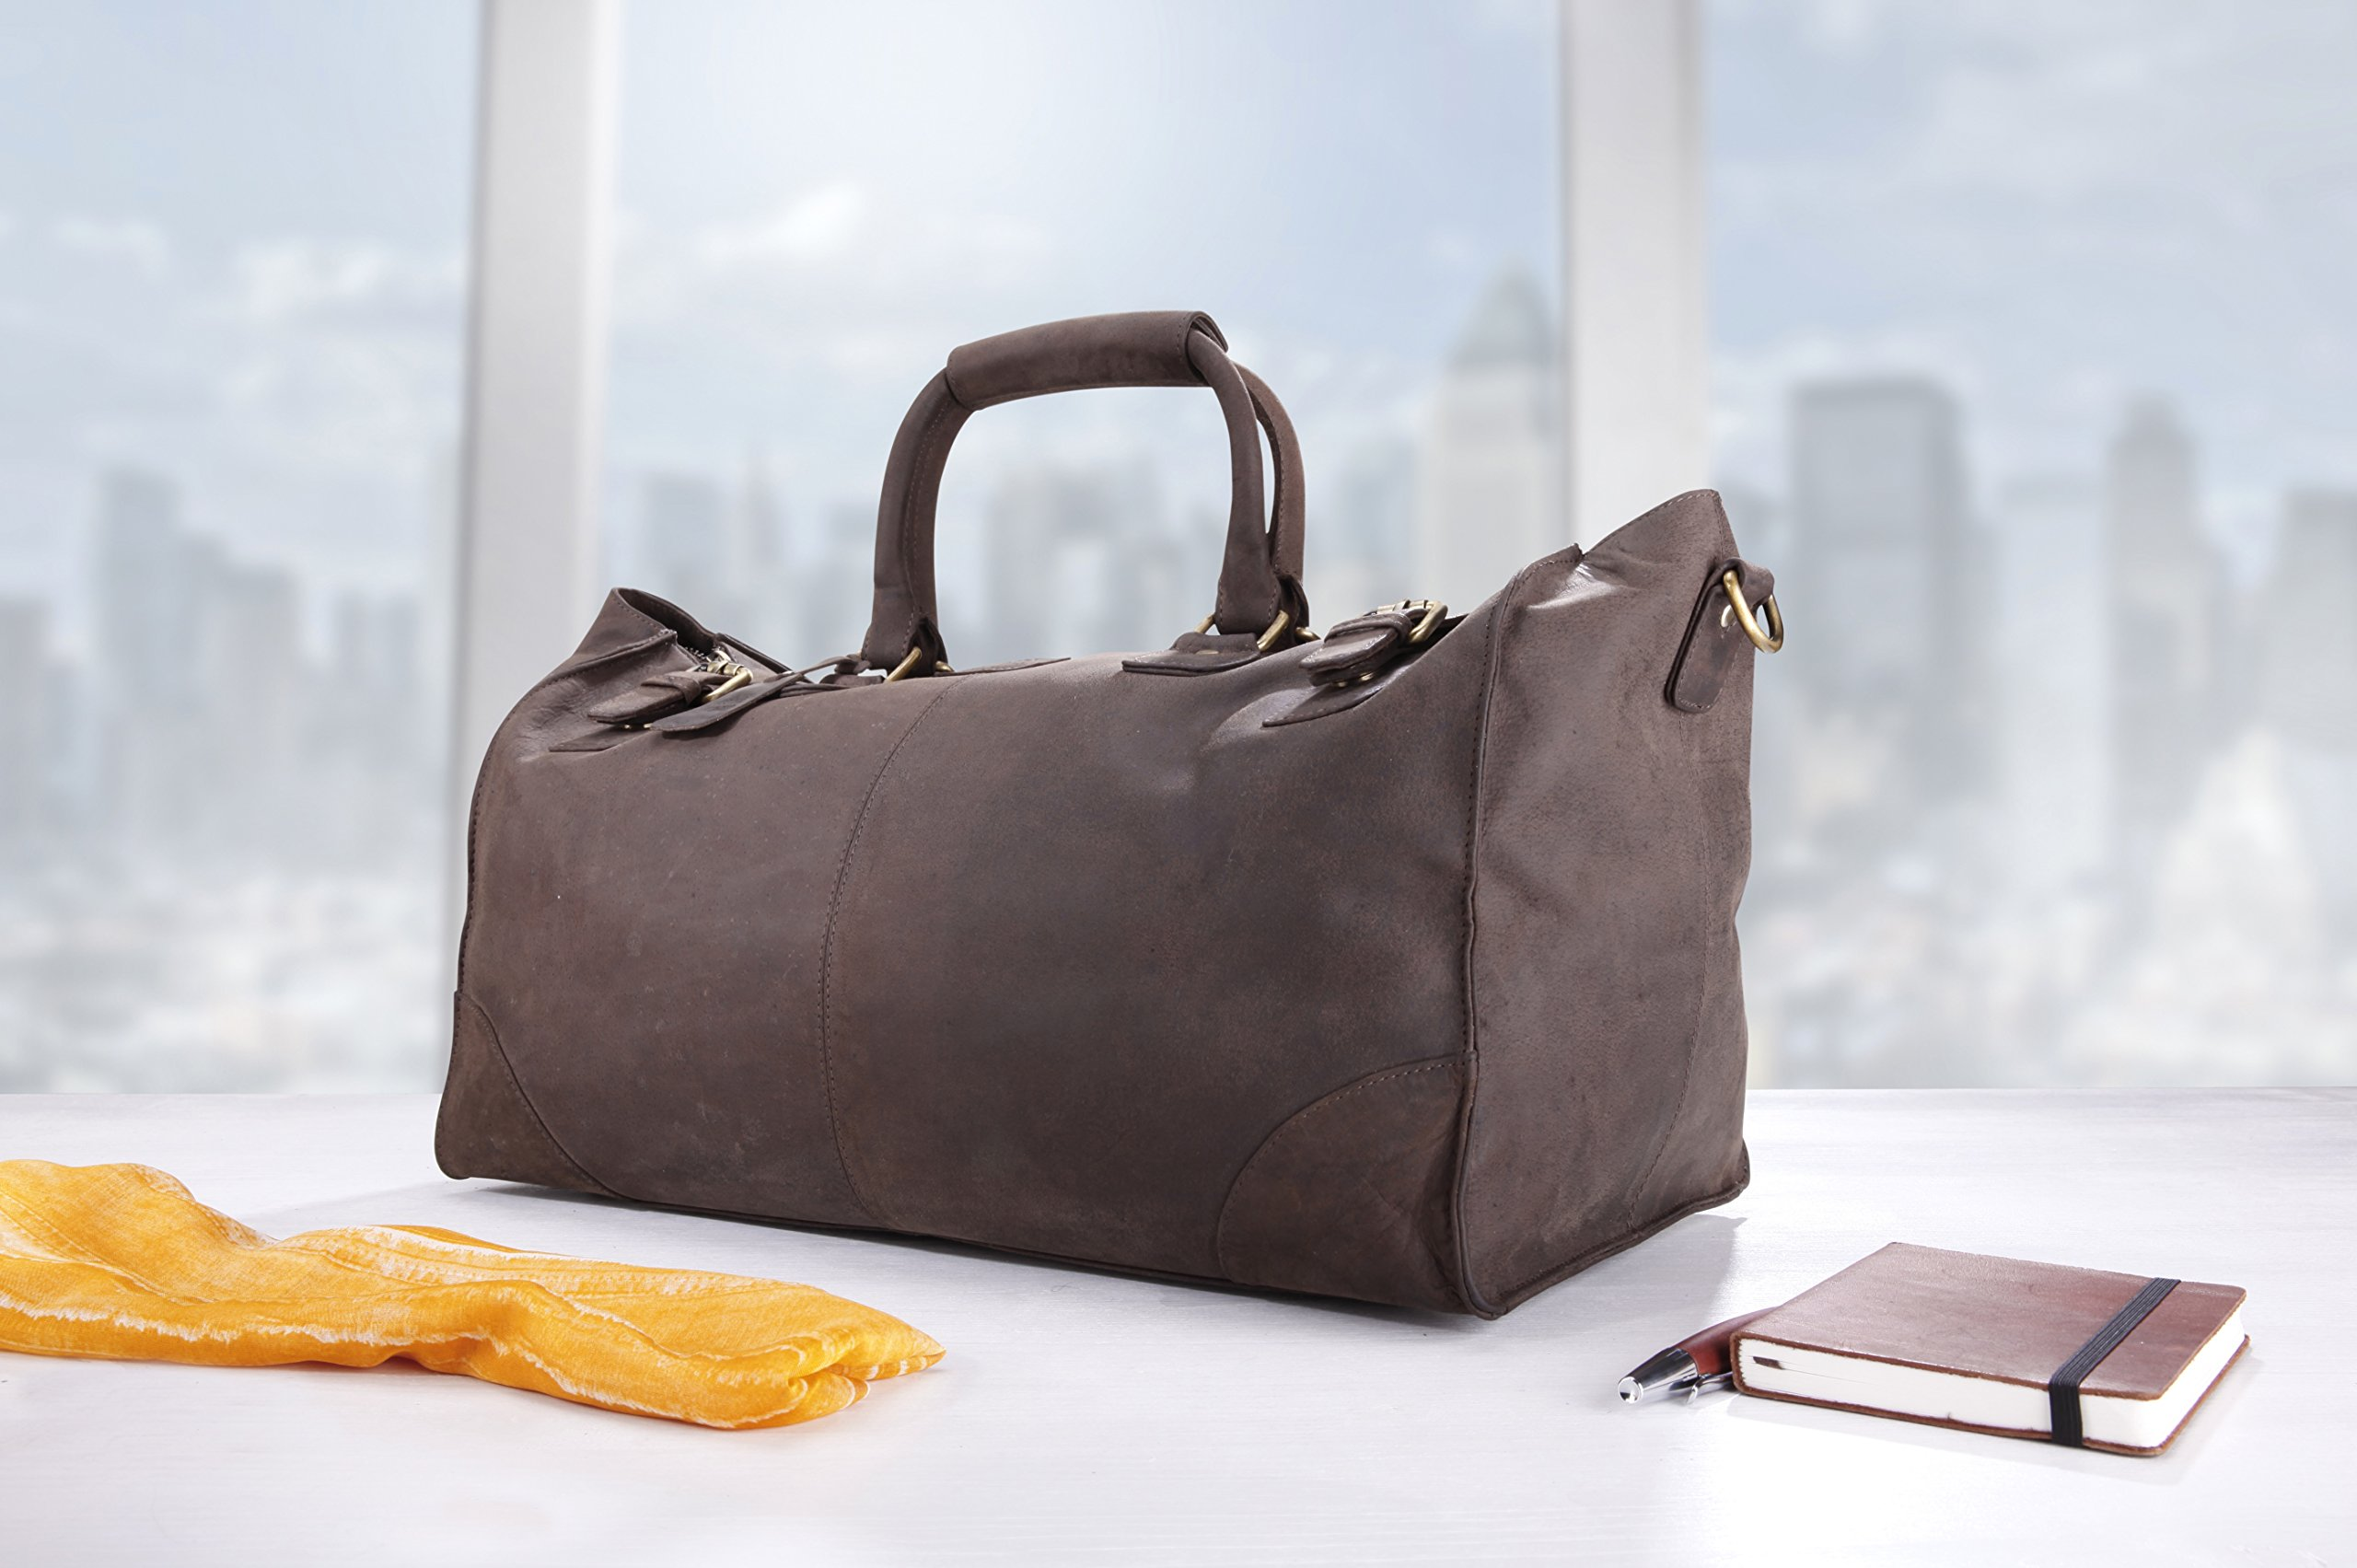 LEABAGS Durham genuine buffalo leather duffle bag in vintage style - Nutmeg by LEABAGS (Image #10)